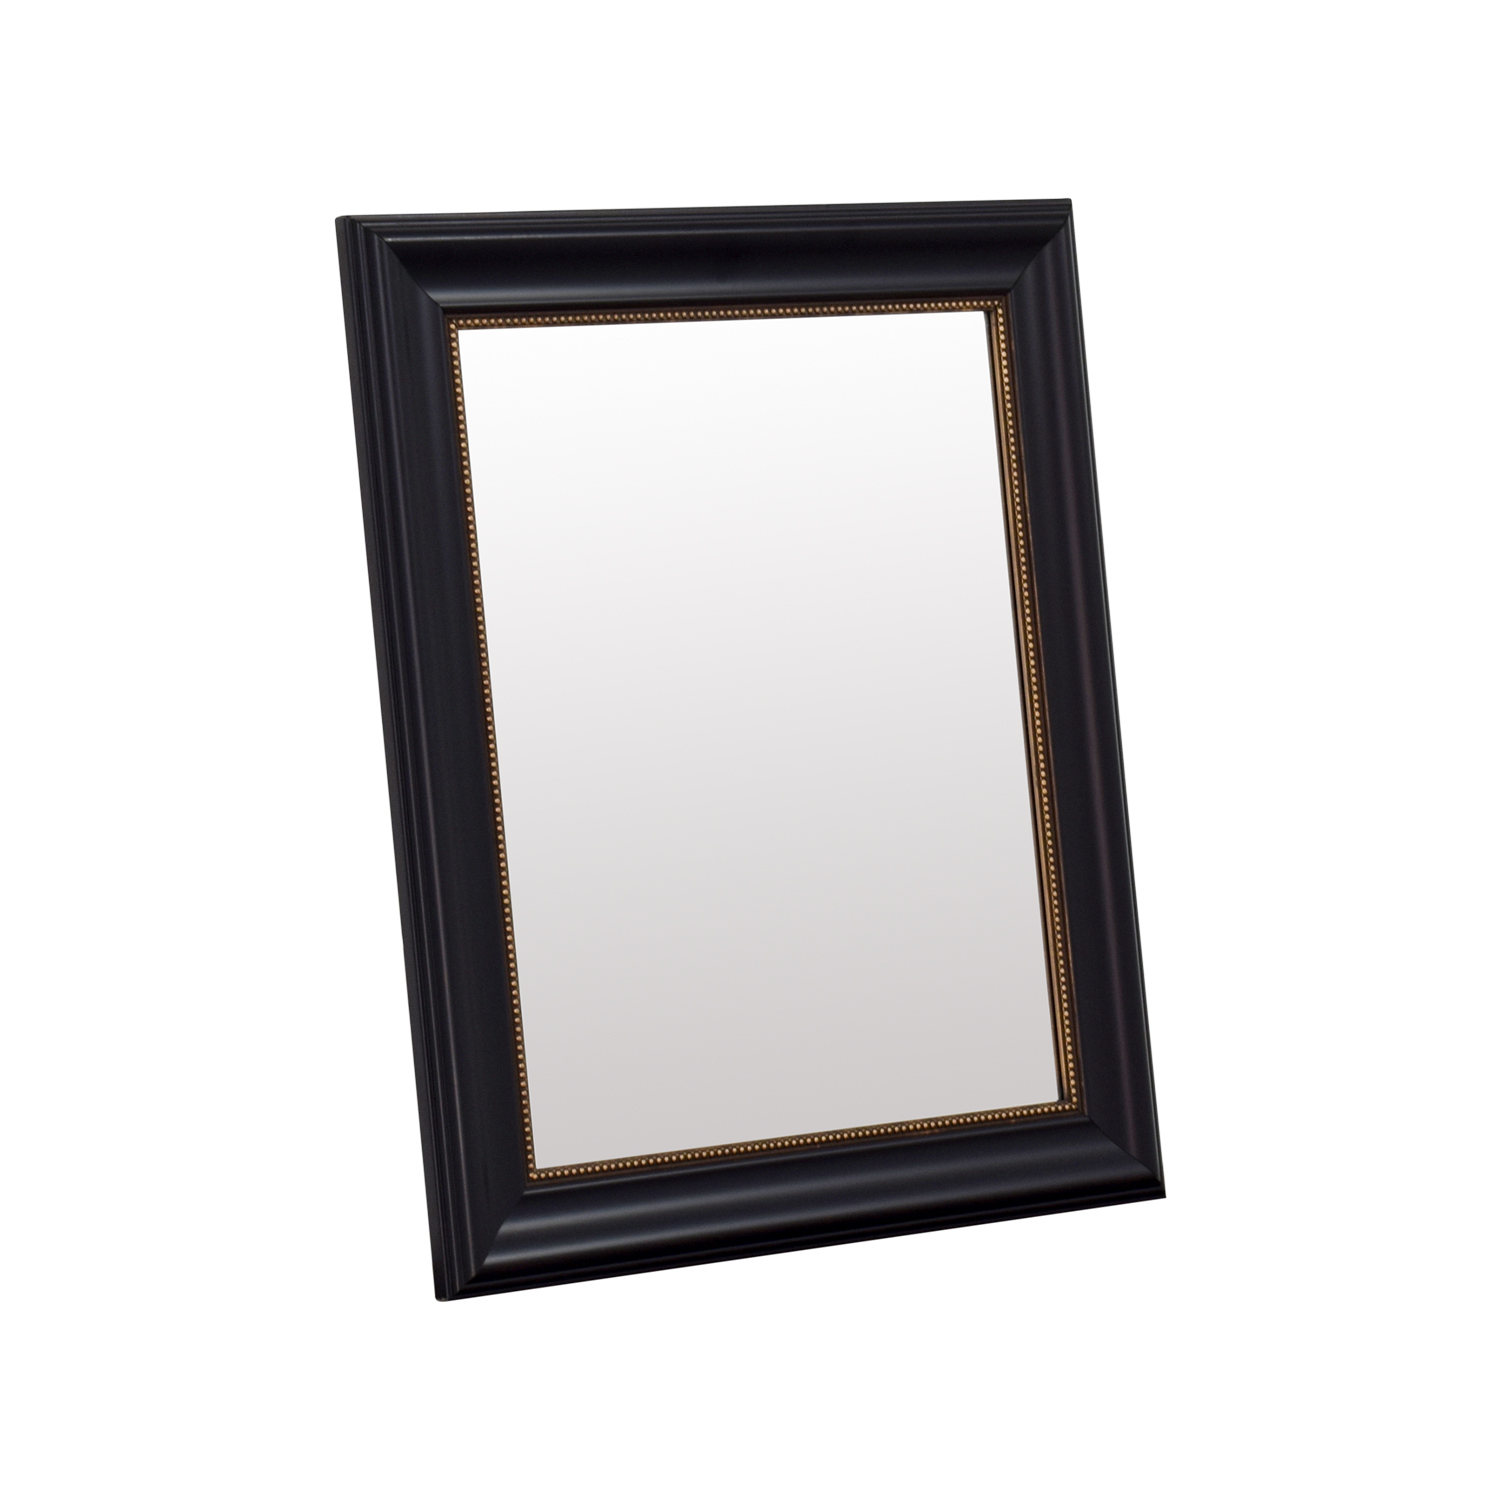 HomeGoods HomeGoods Black and Gold Beveled Mirror Mirrors